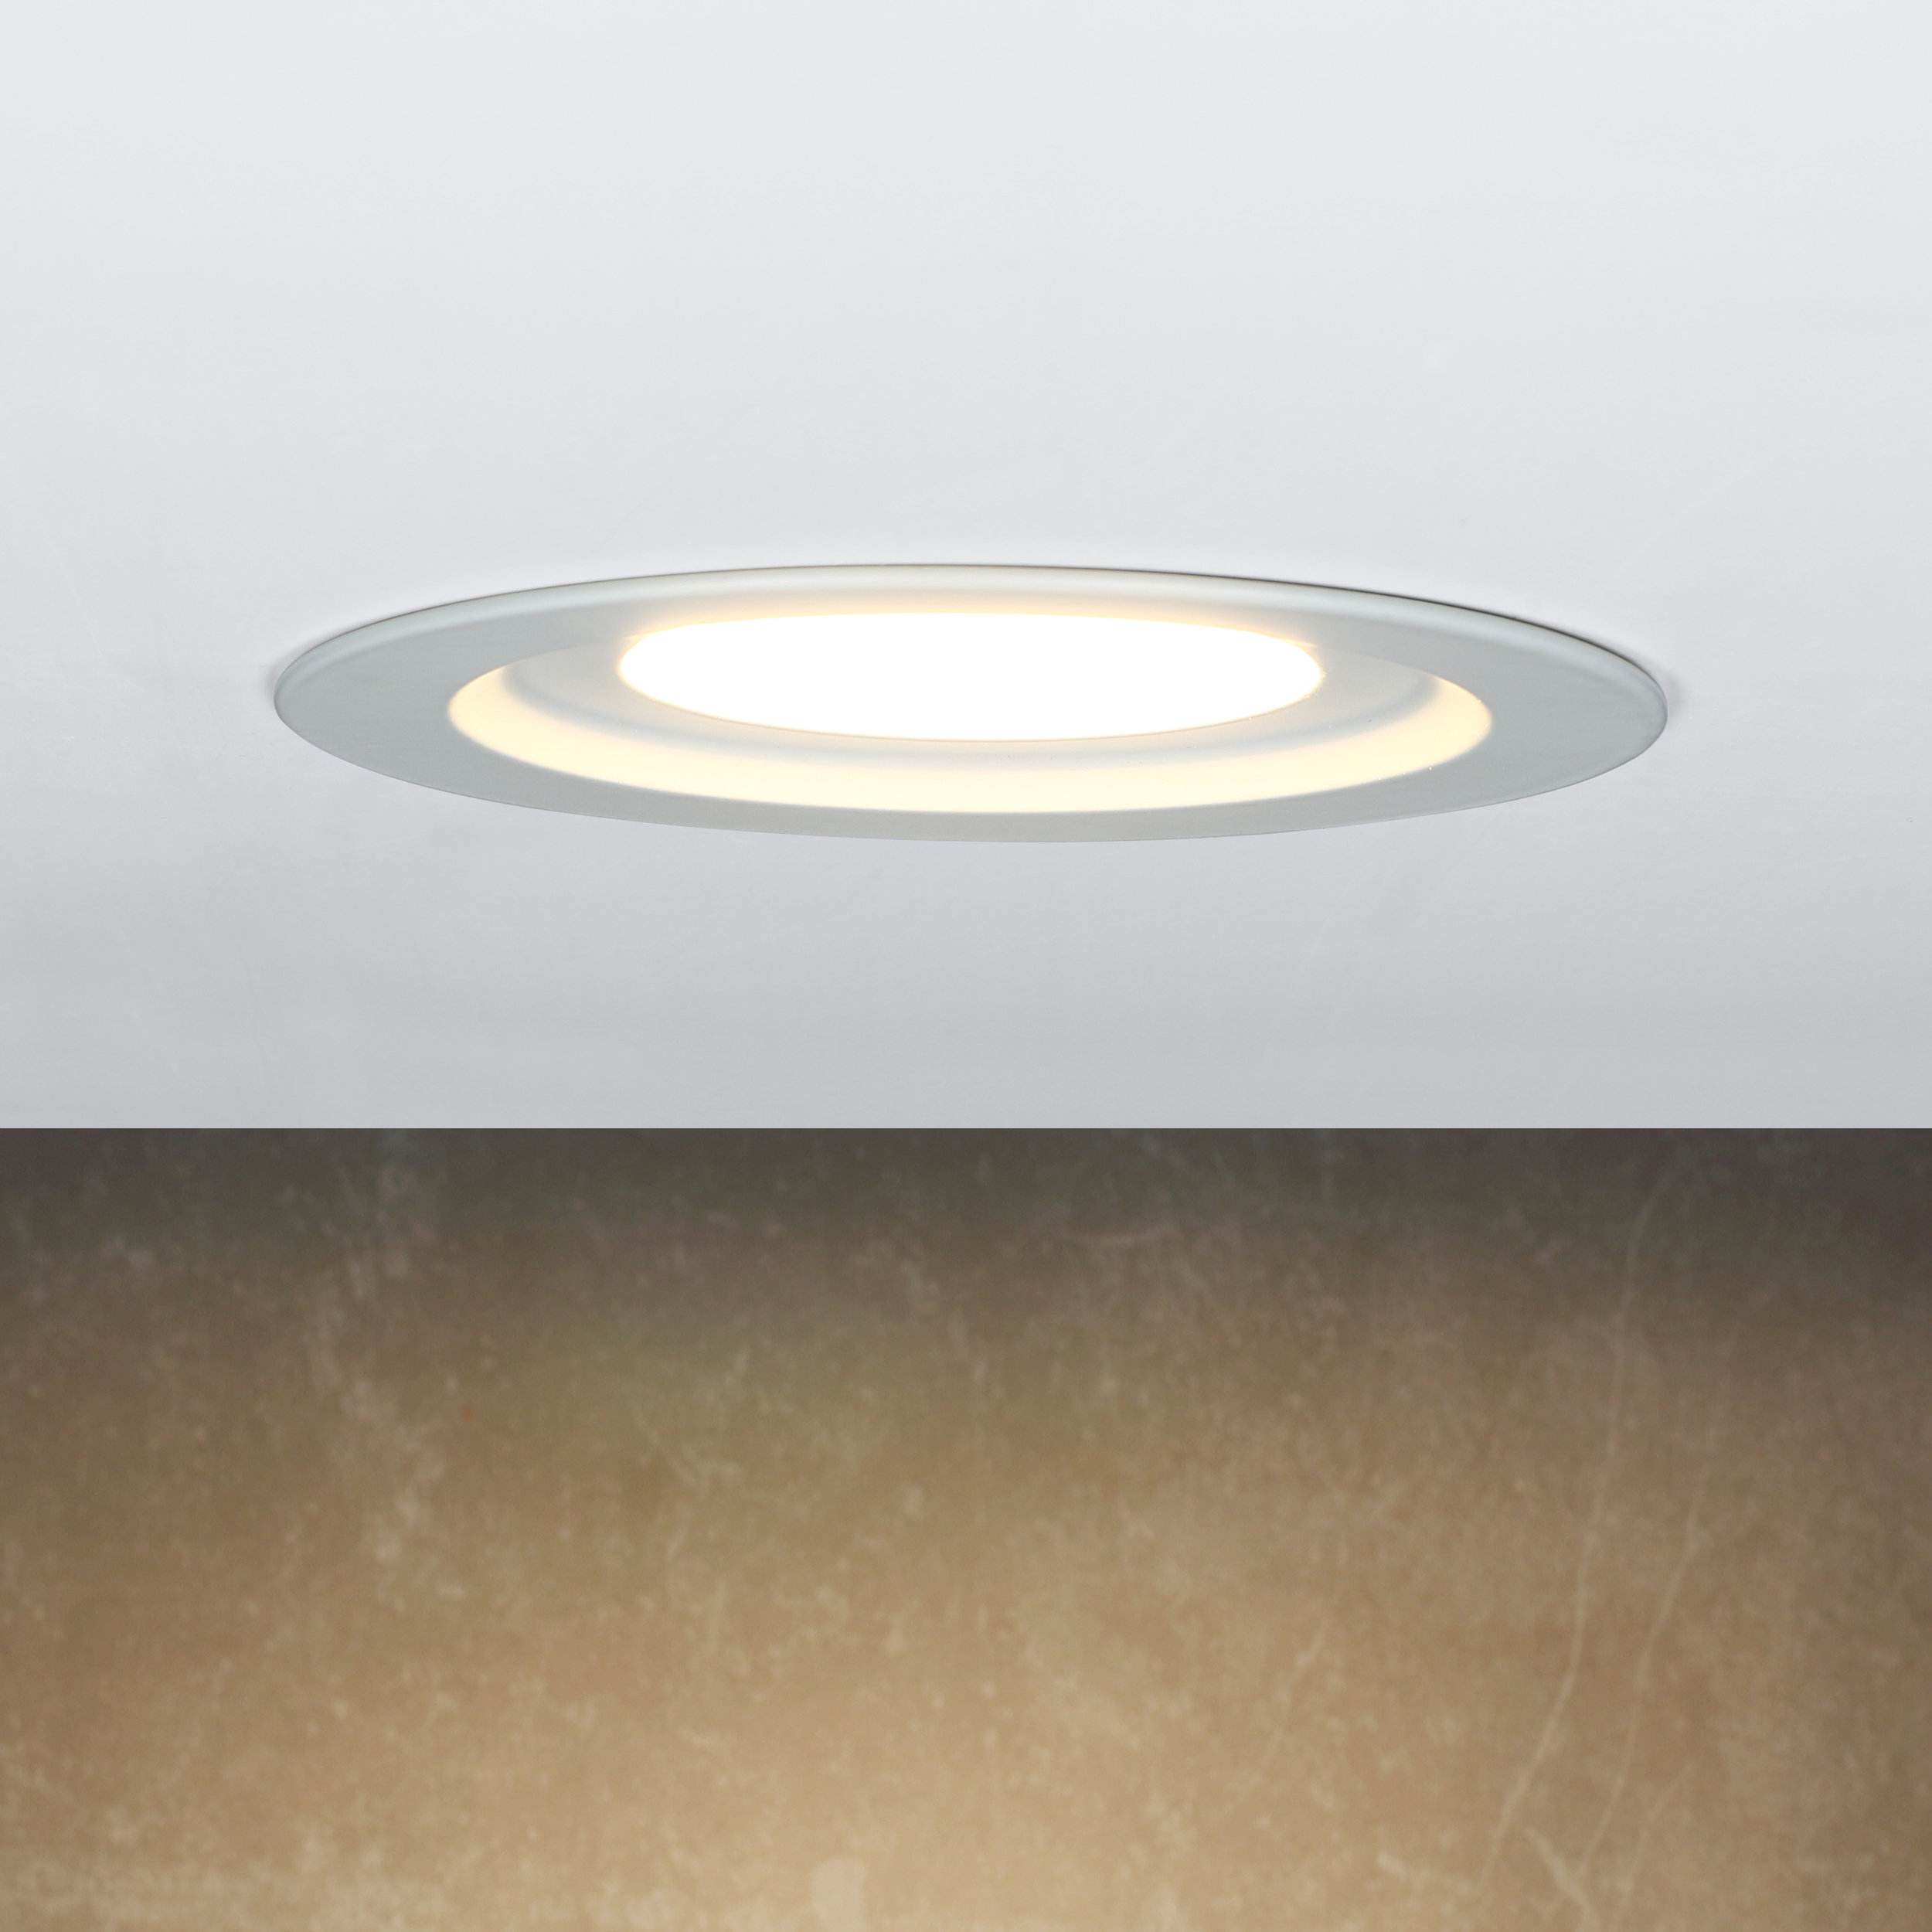 Novolink NRL04-9W-E26 4-inch LED Recessed Light Trim - Installed